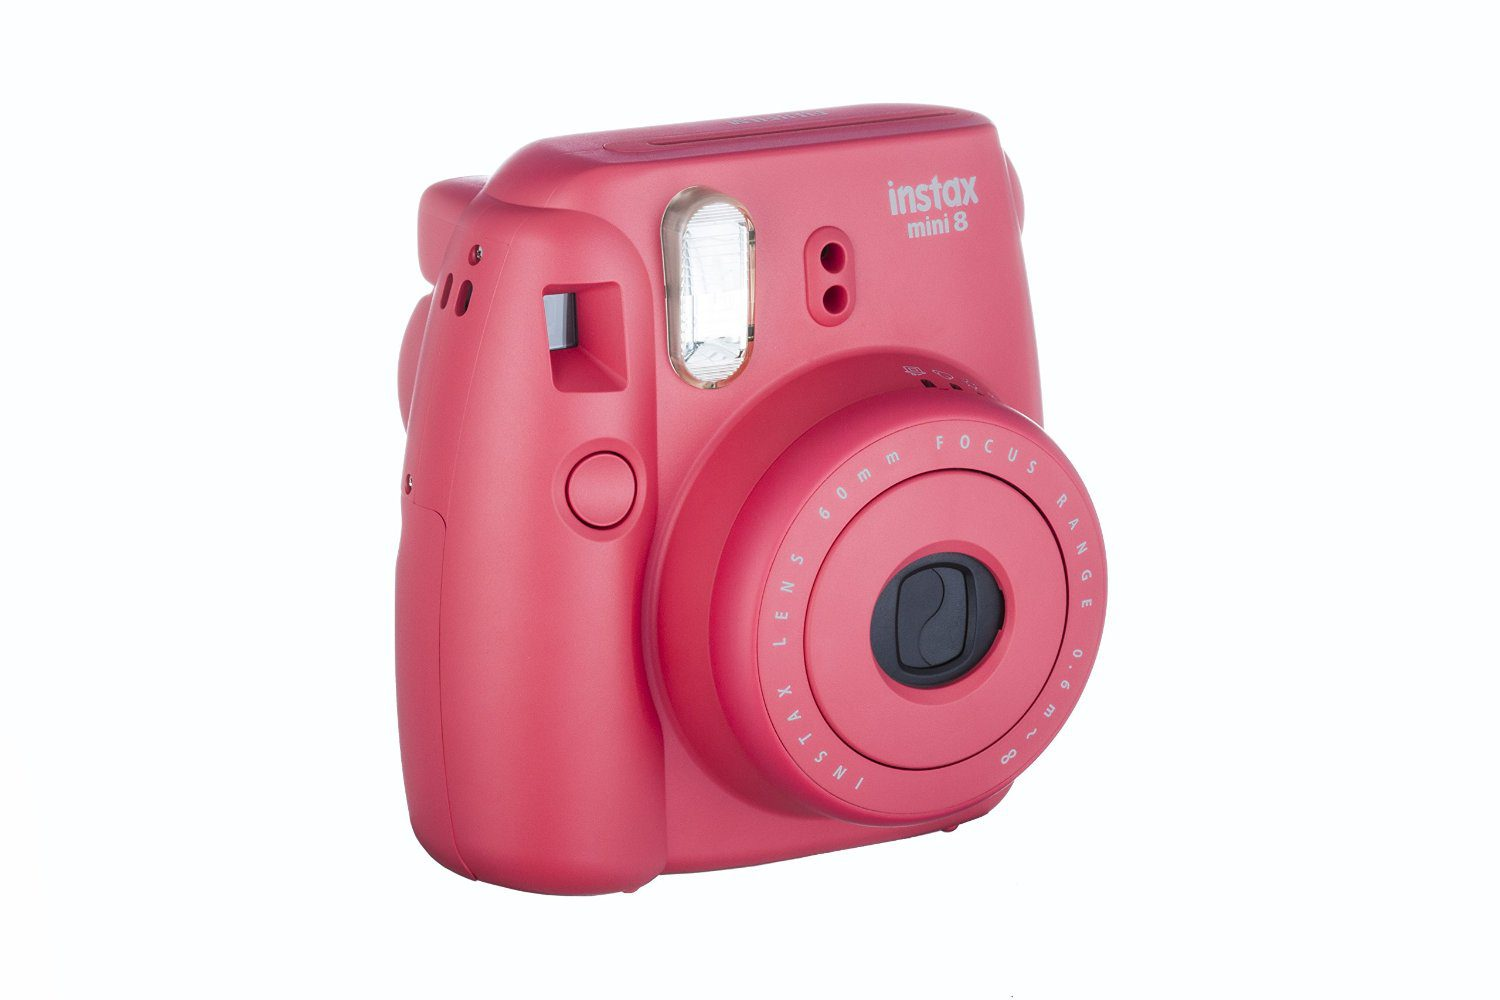 Gifts for 10 year old girls: camera